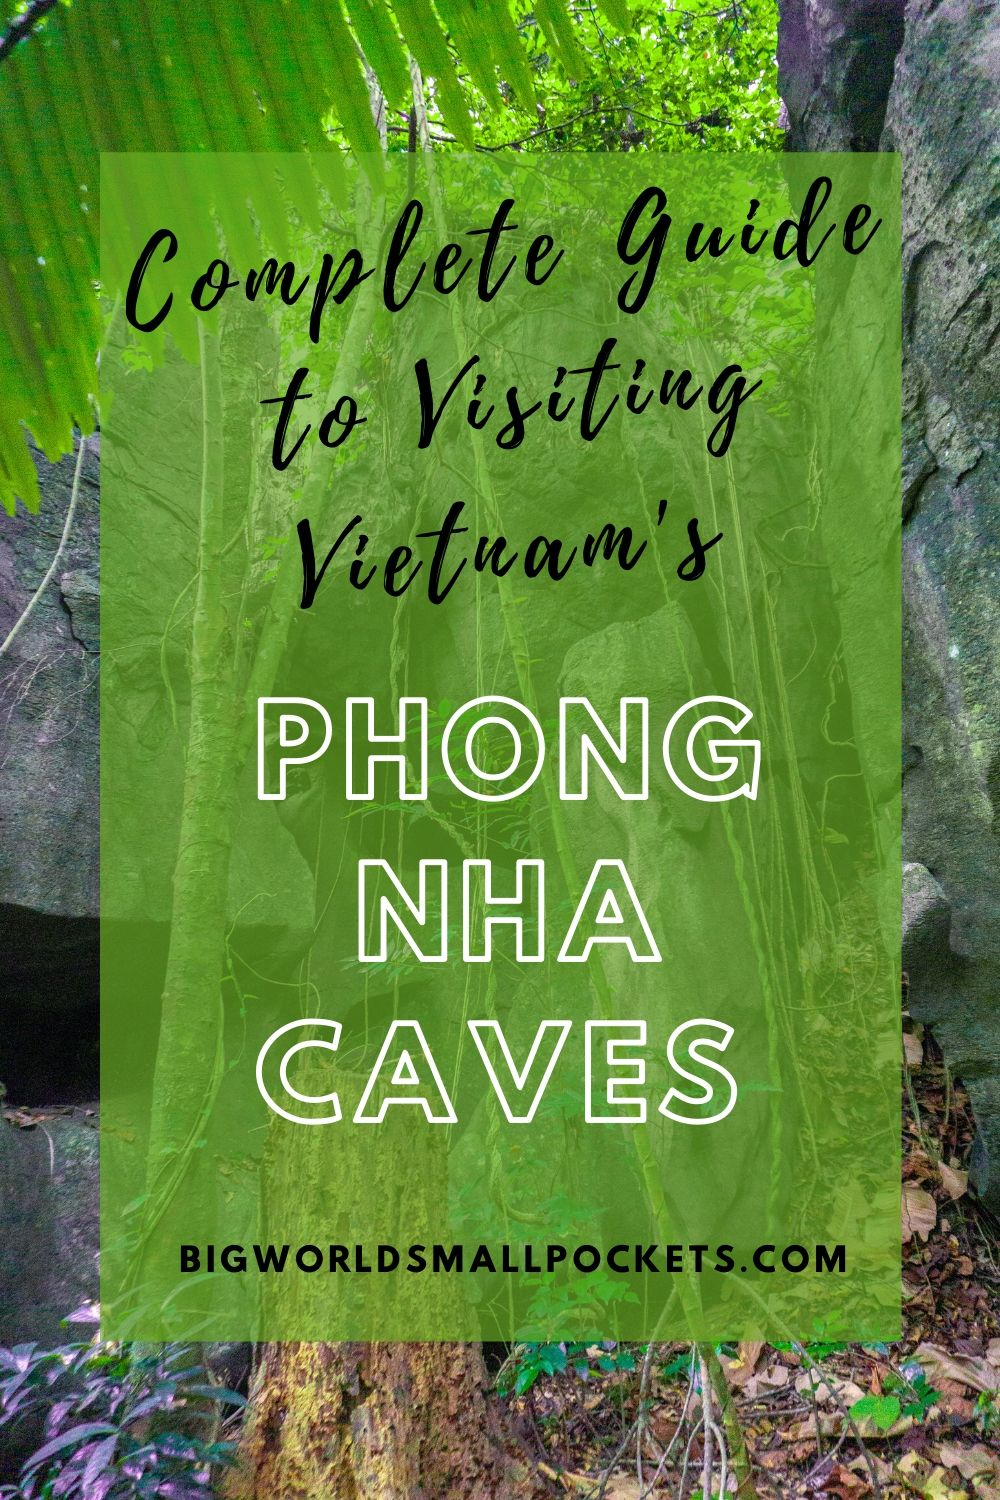 Complete Guide to Visiting Phong Nha Caves in Vietnam